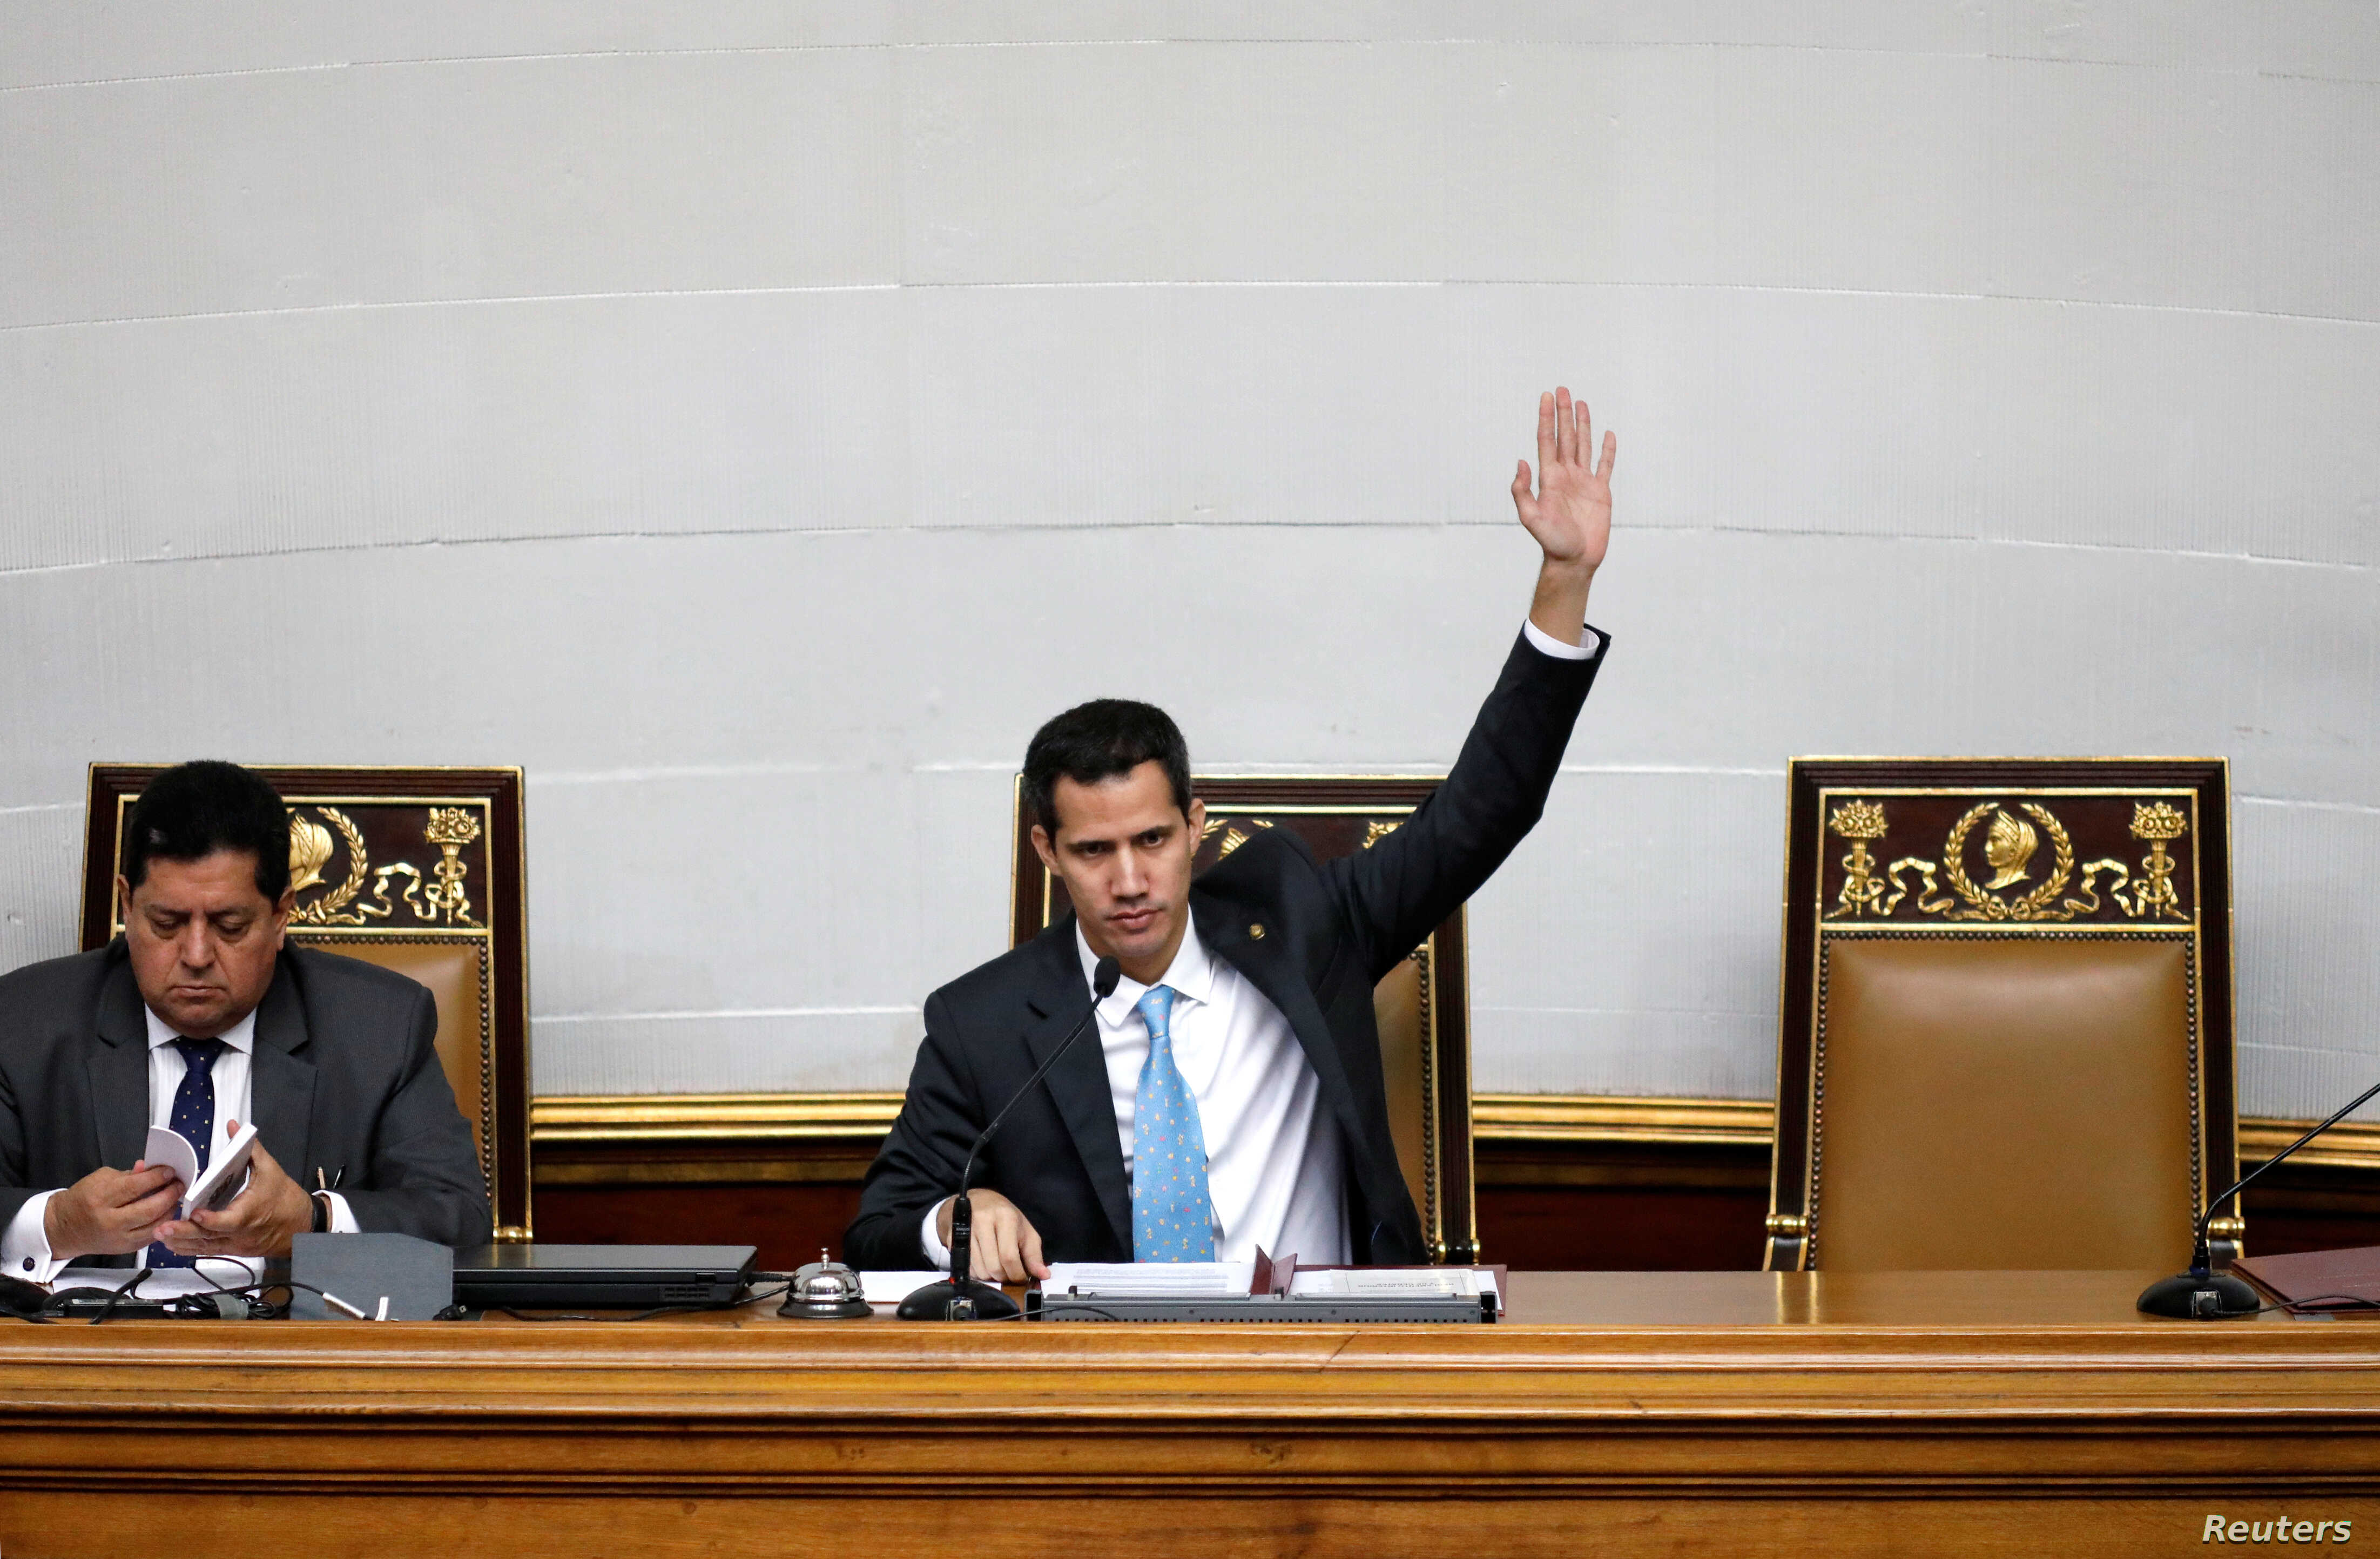 Juan Guaido, President of the Venezuela's National Assembly, attends a session in Caracas, Venezuela, Jan. 15, 2019.